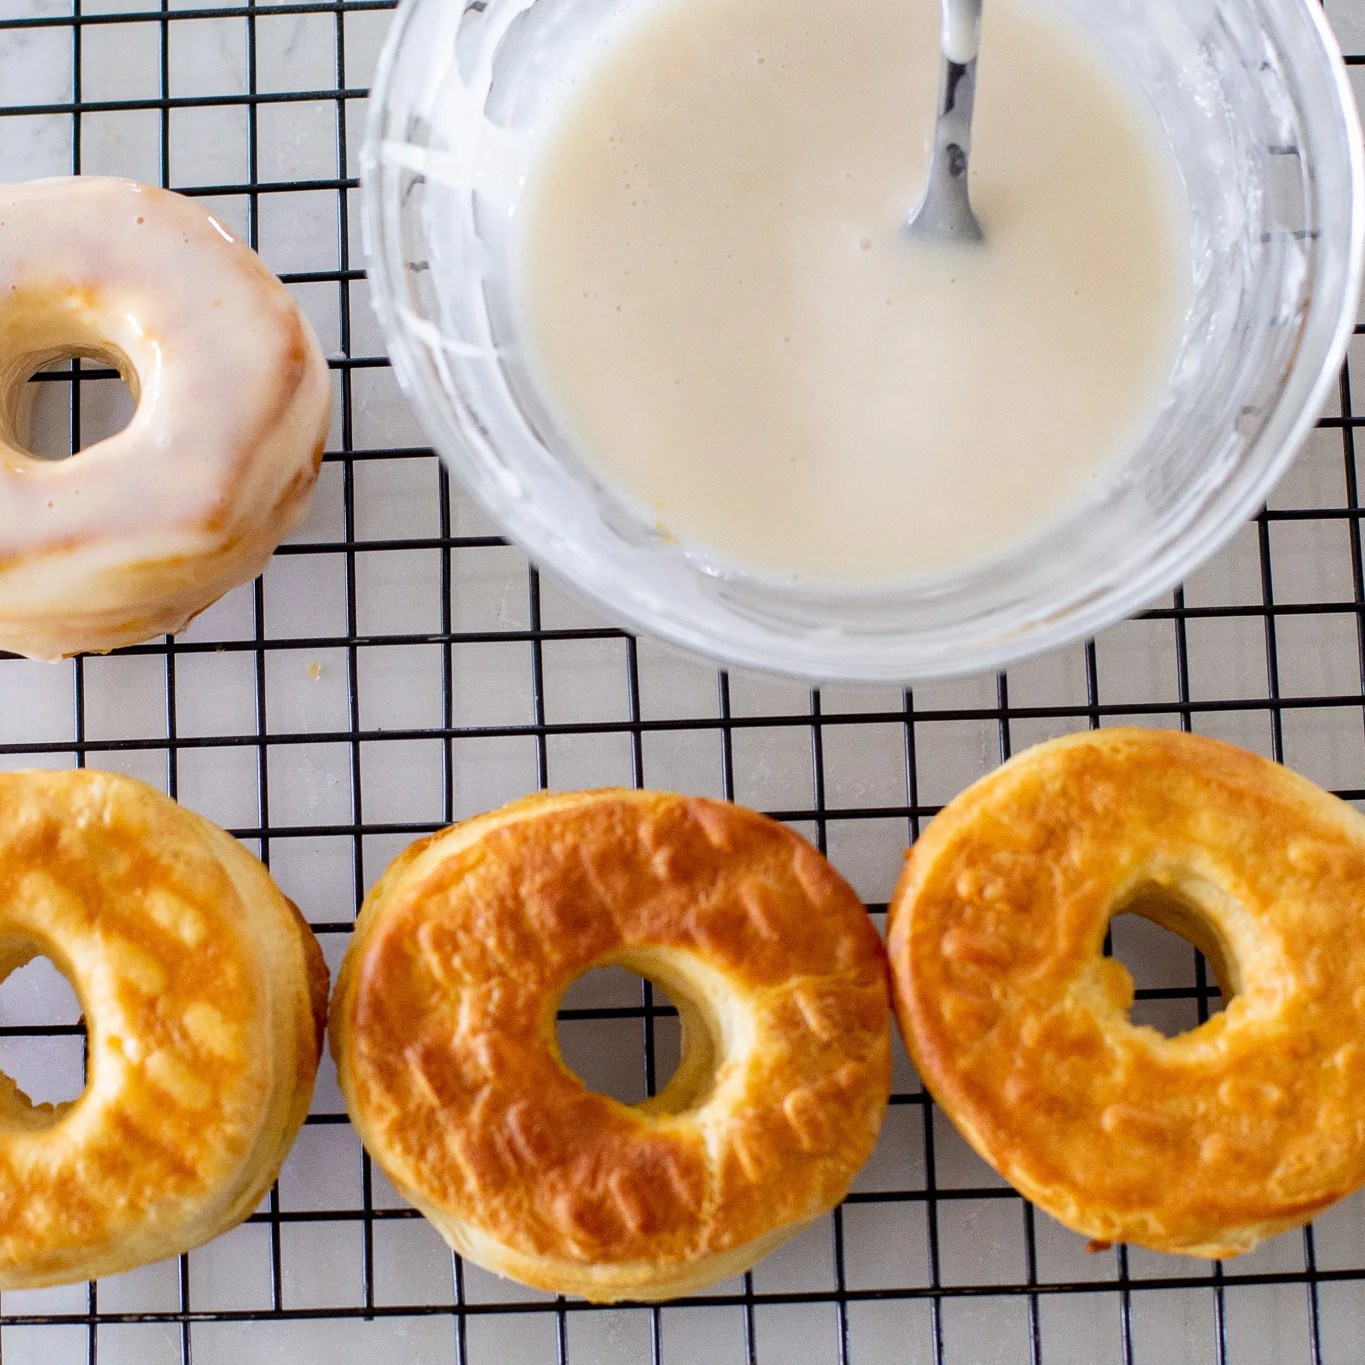 glaze and donuts on a cooling rack